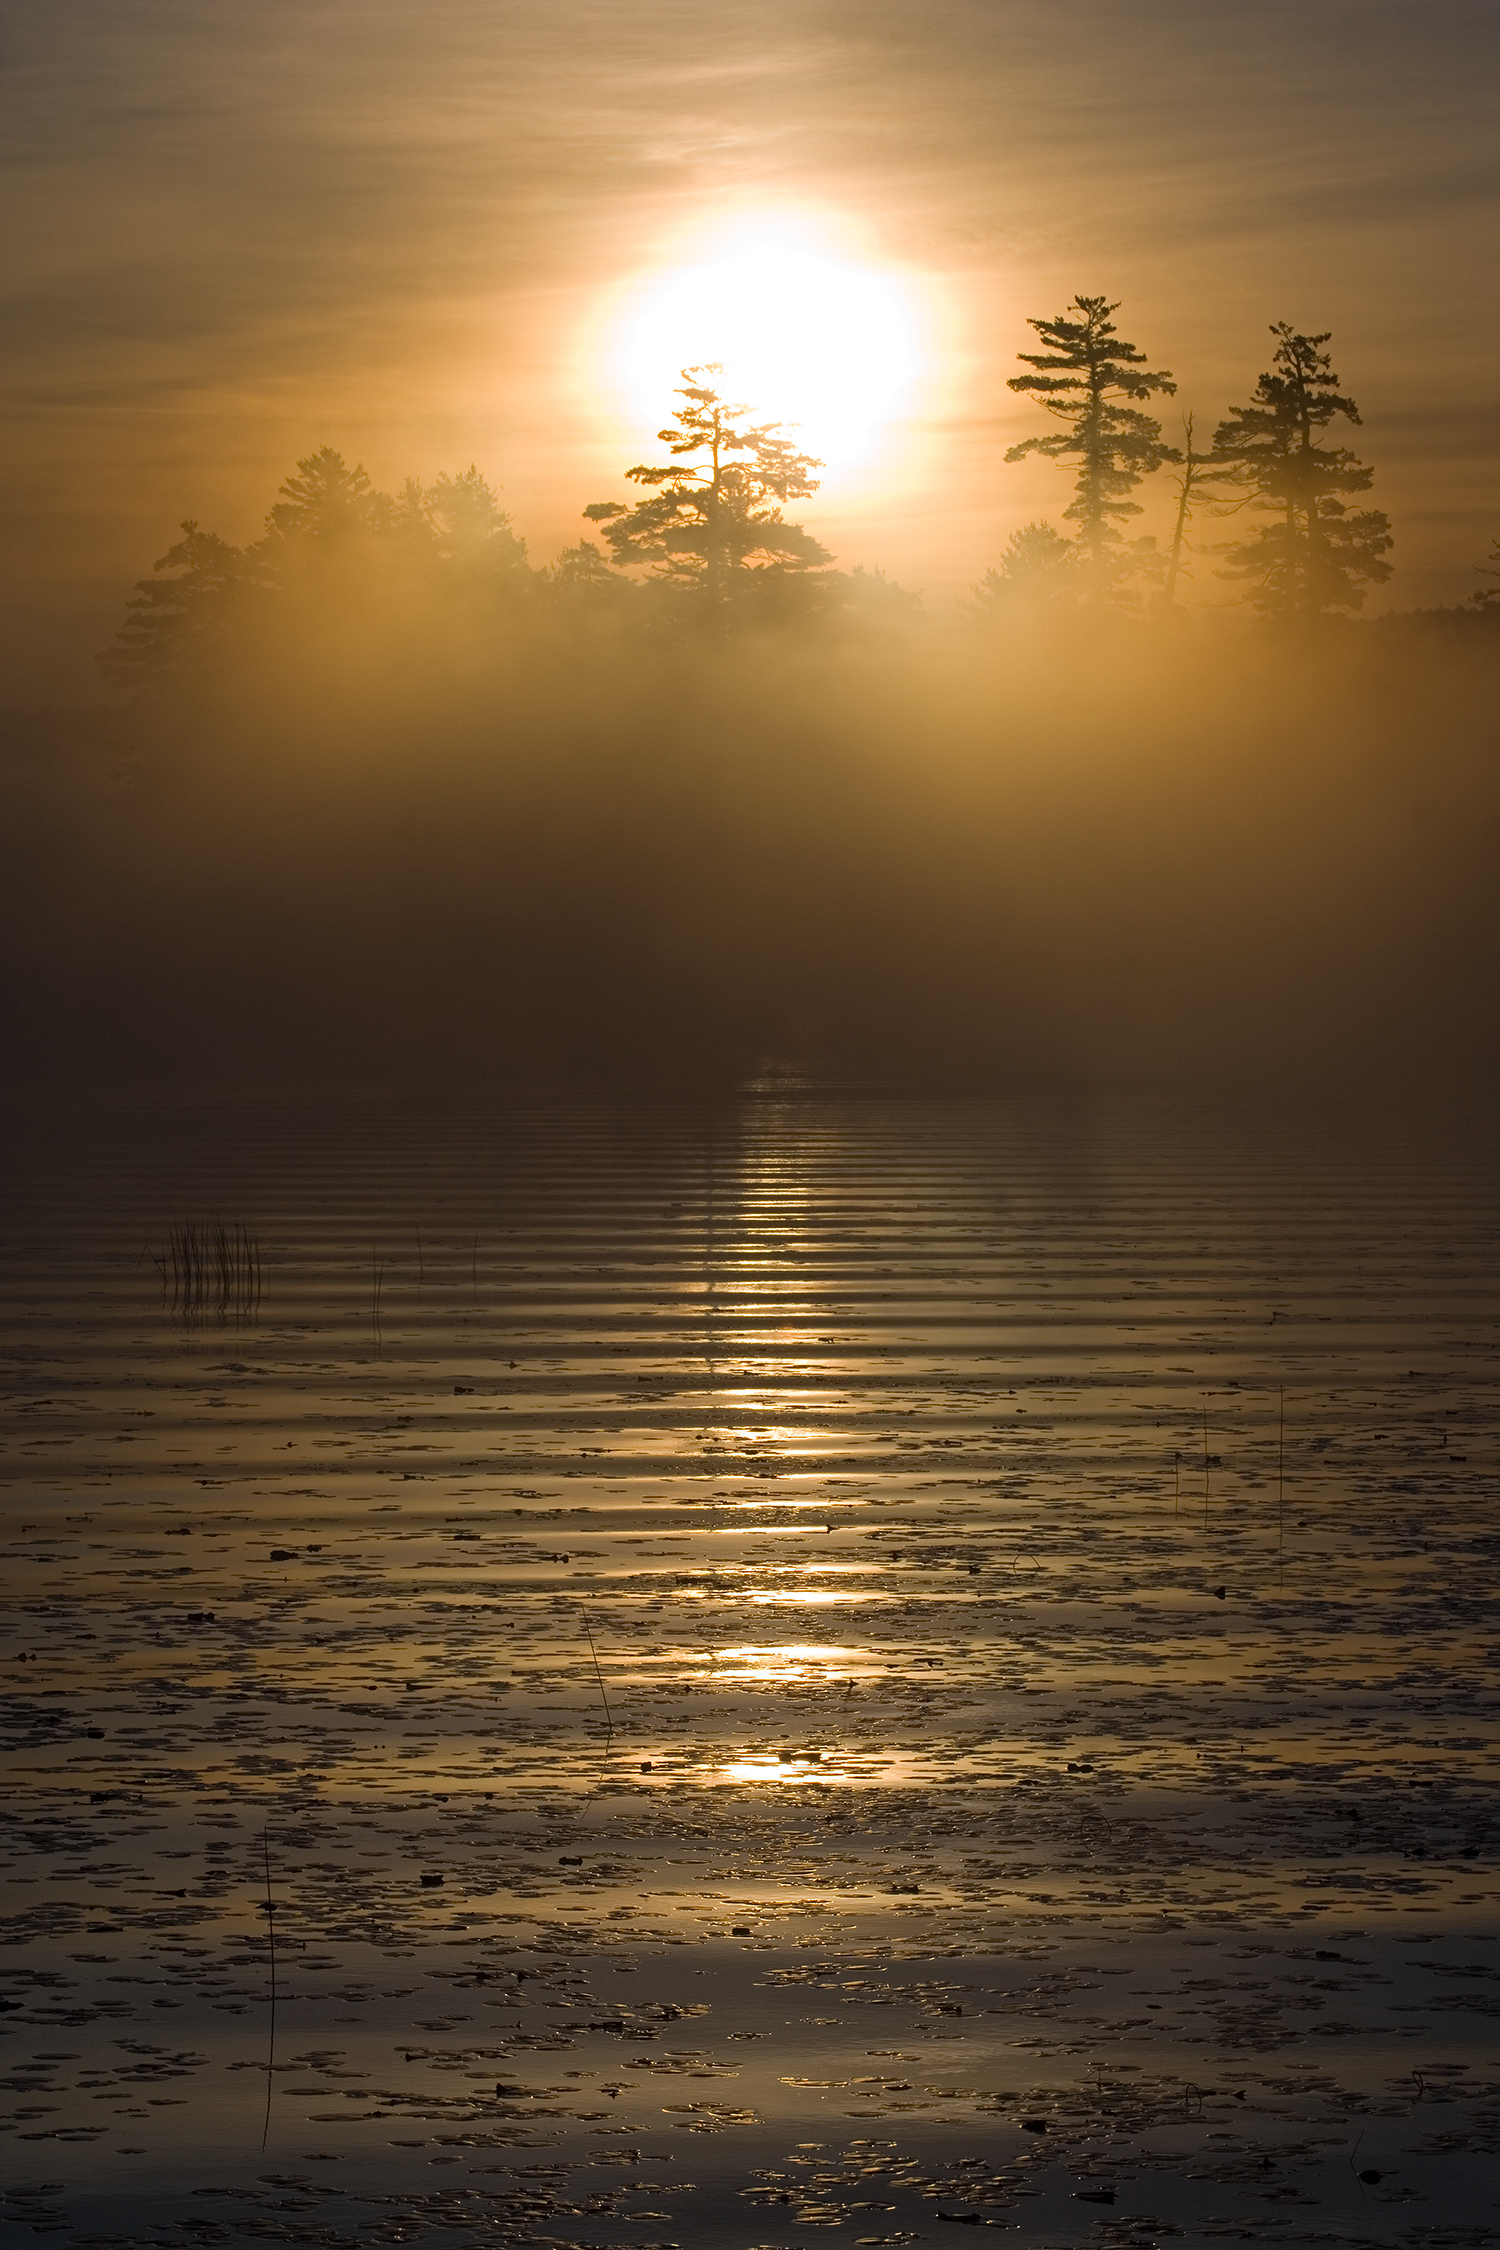 Mary Louise Ravese - Image: Mystical SunriseMary Louise is a fine art photographer whose work ranges from bold and striking to mellow and contemplative. Favorite subjects are landscapes, close-ups, architectural details and abstracts. Inspired by various visual arts, she creates